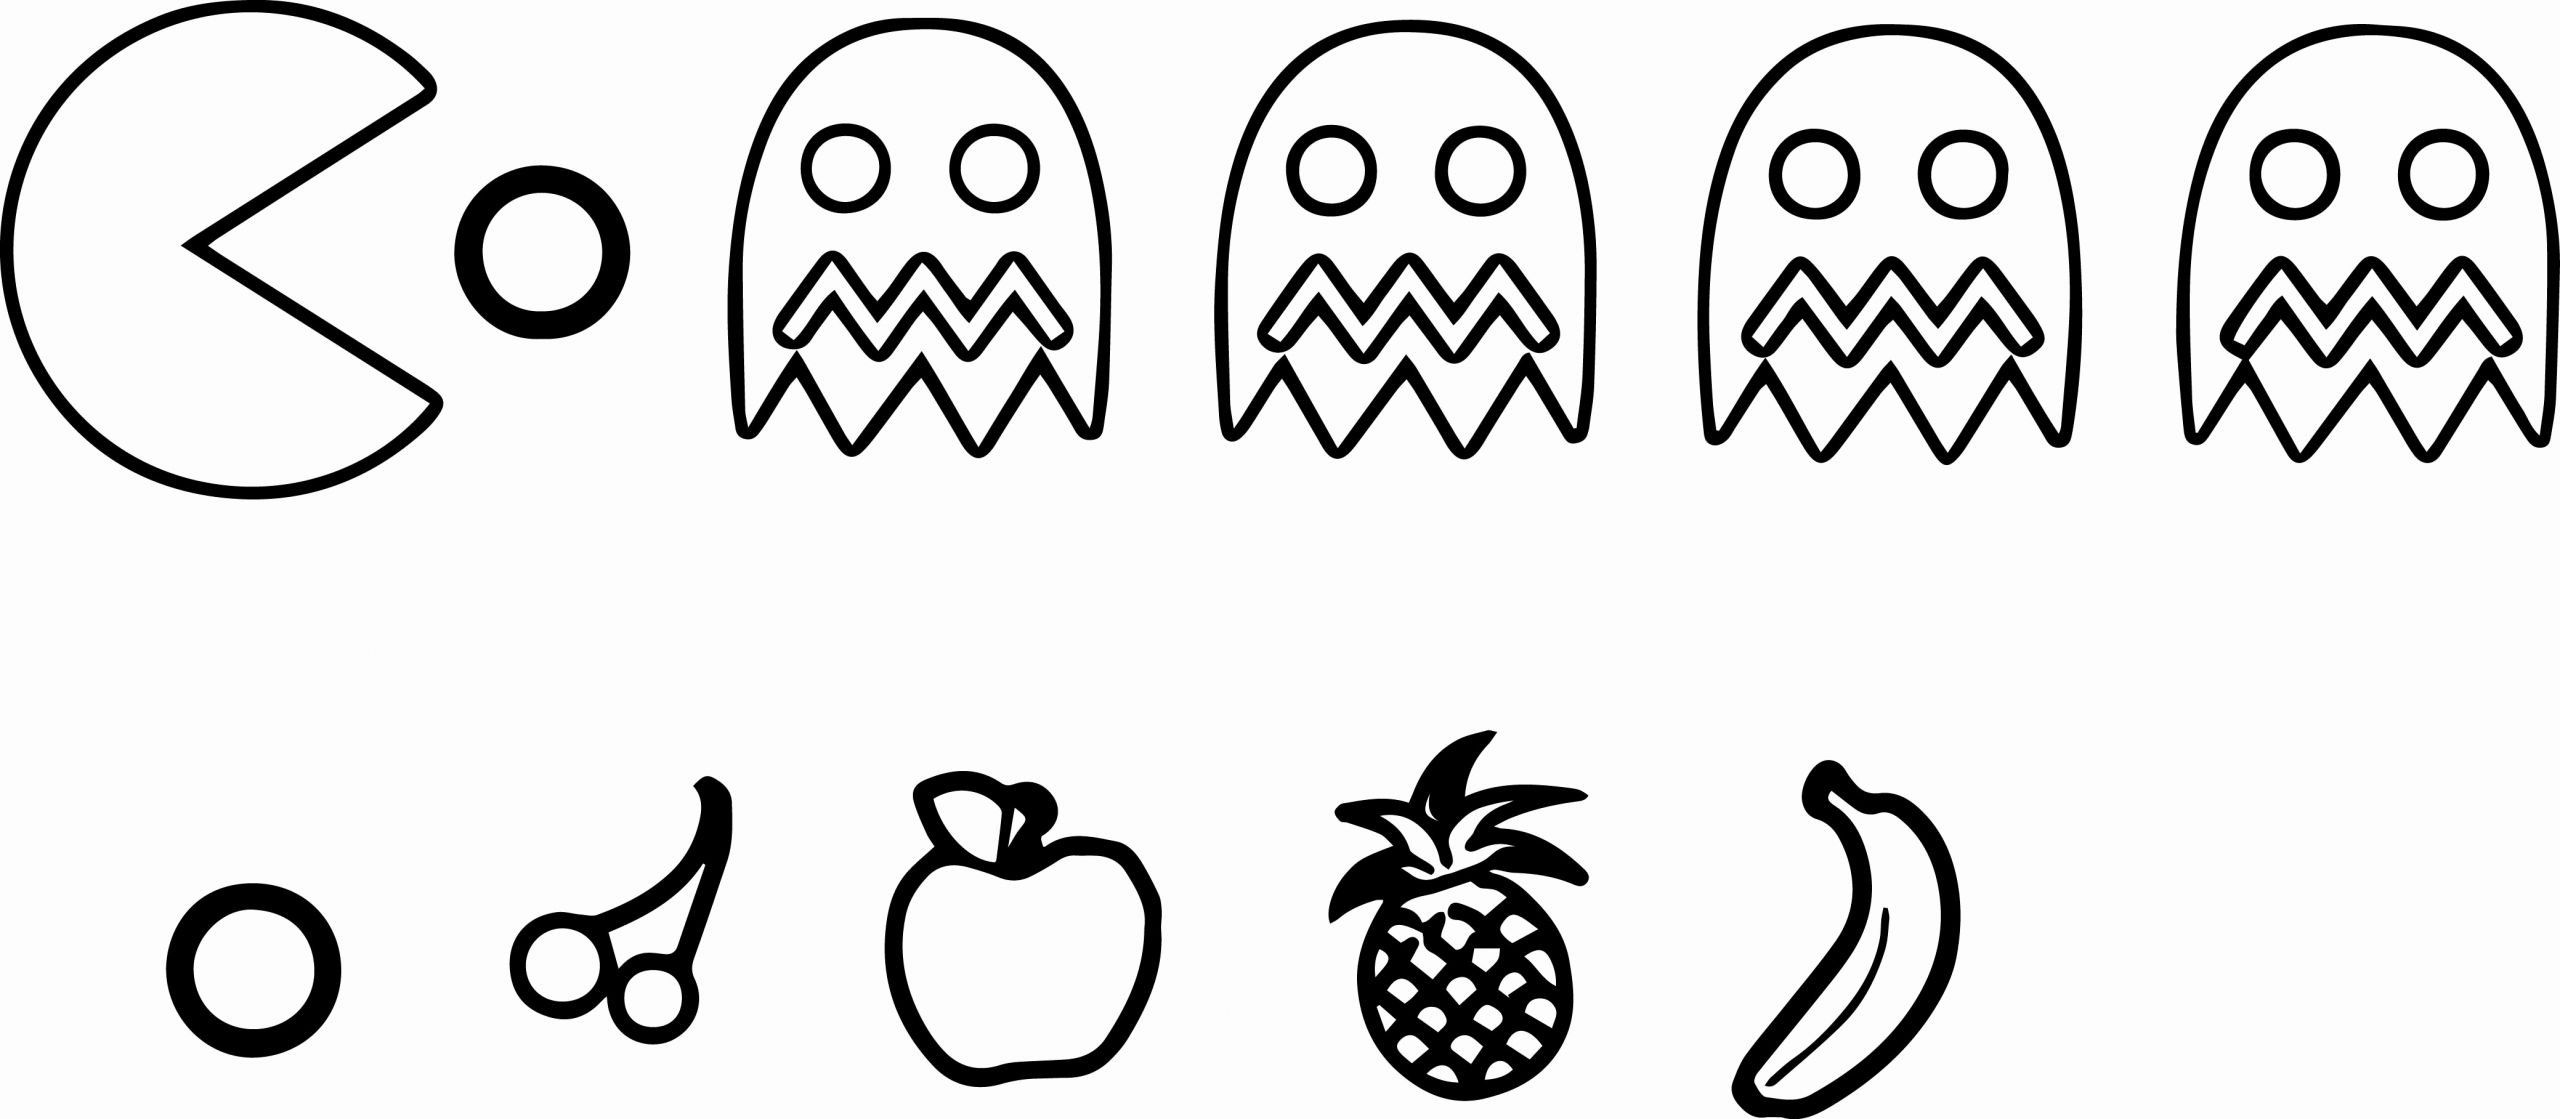 Pin On My Coloring Pages Ideas Printable